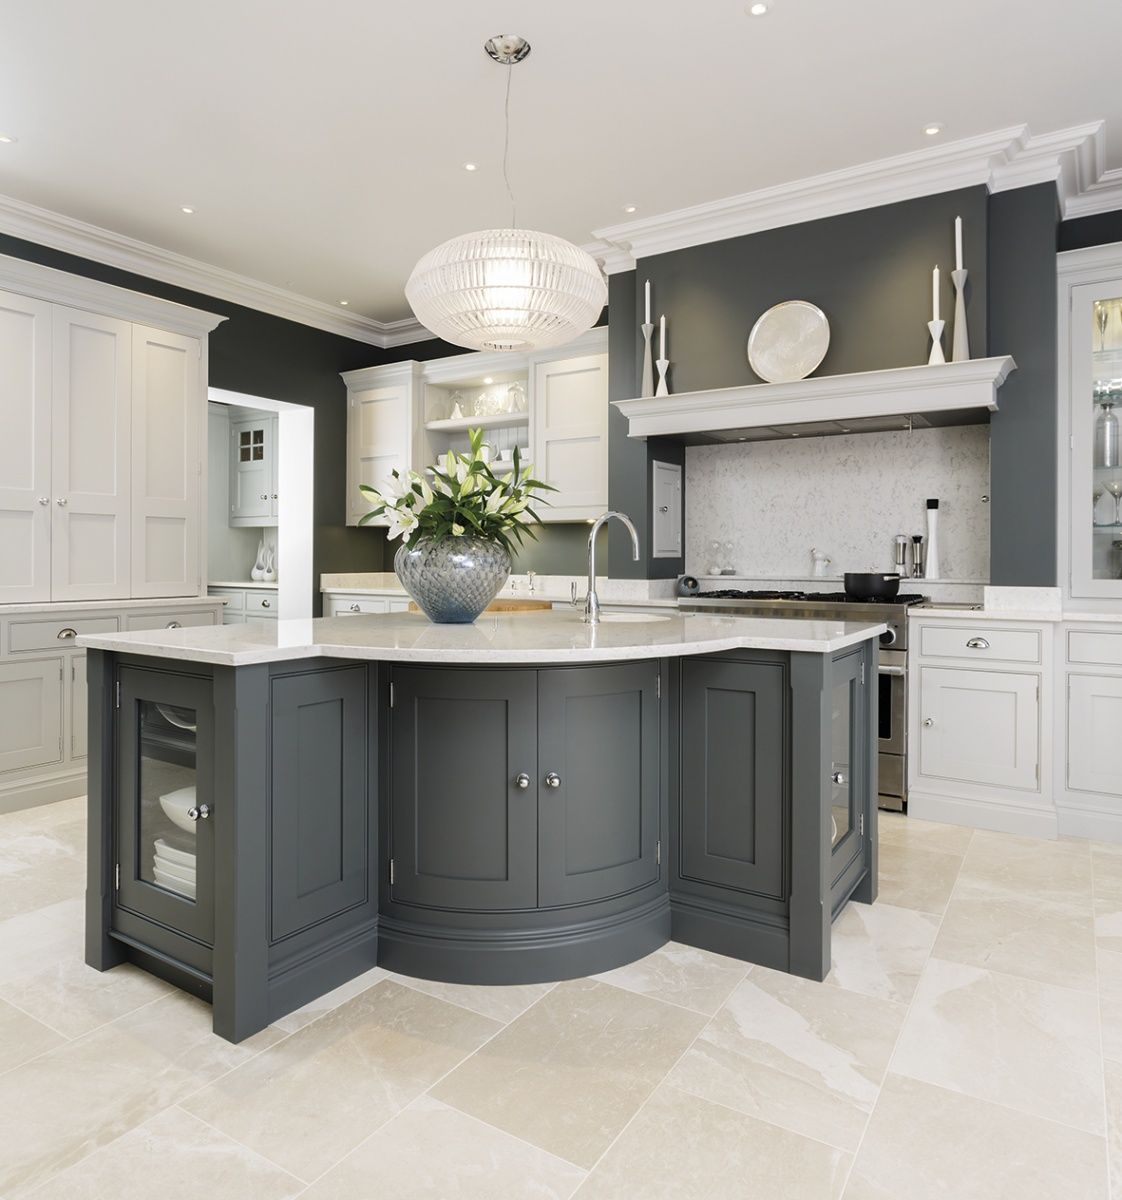 Bespoke Kitchen Design A kitchen is almost always the heart of every ...